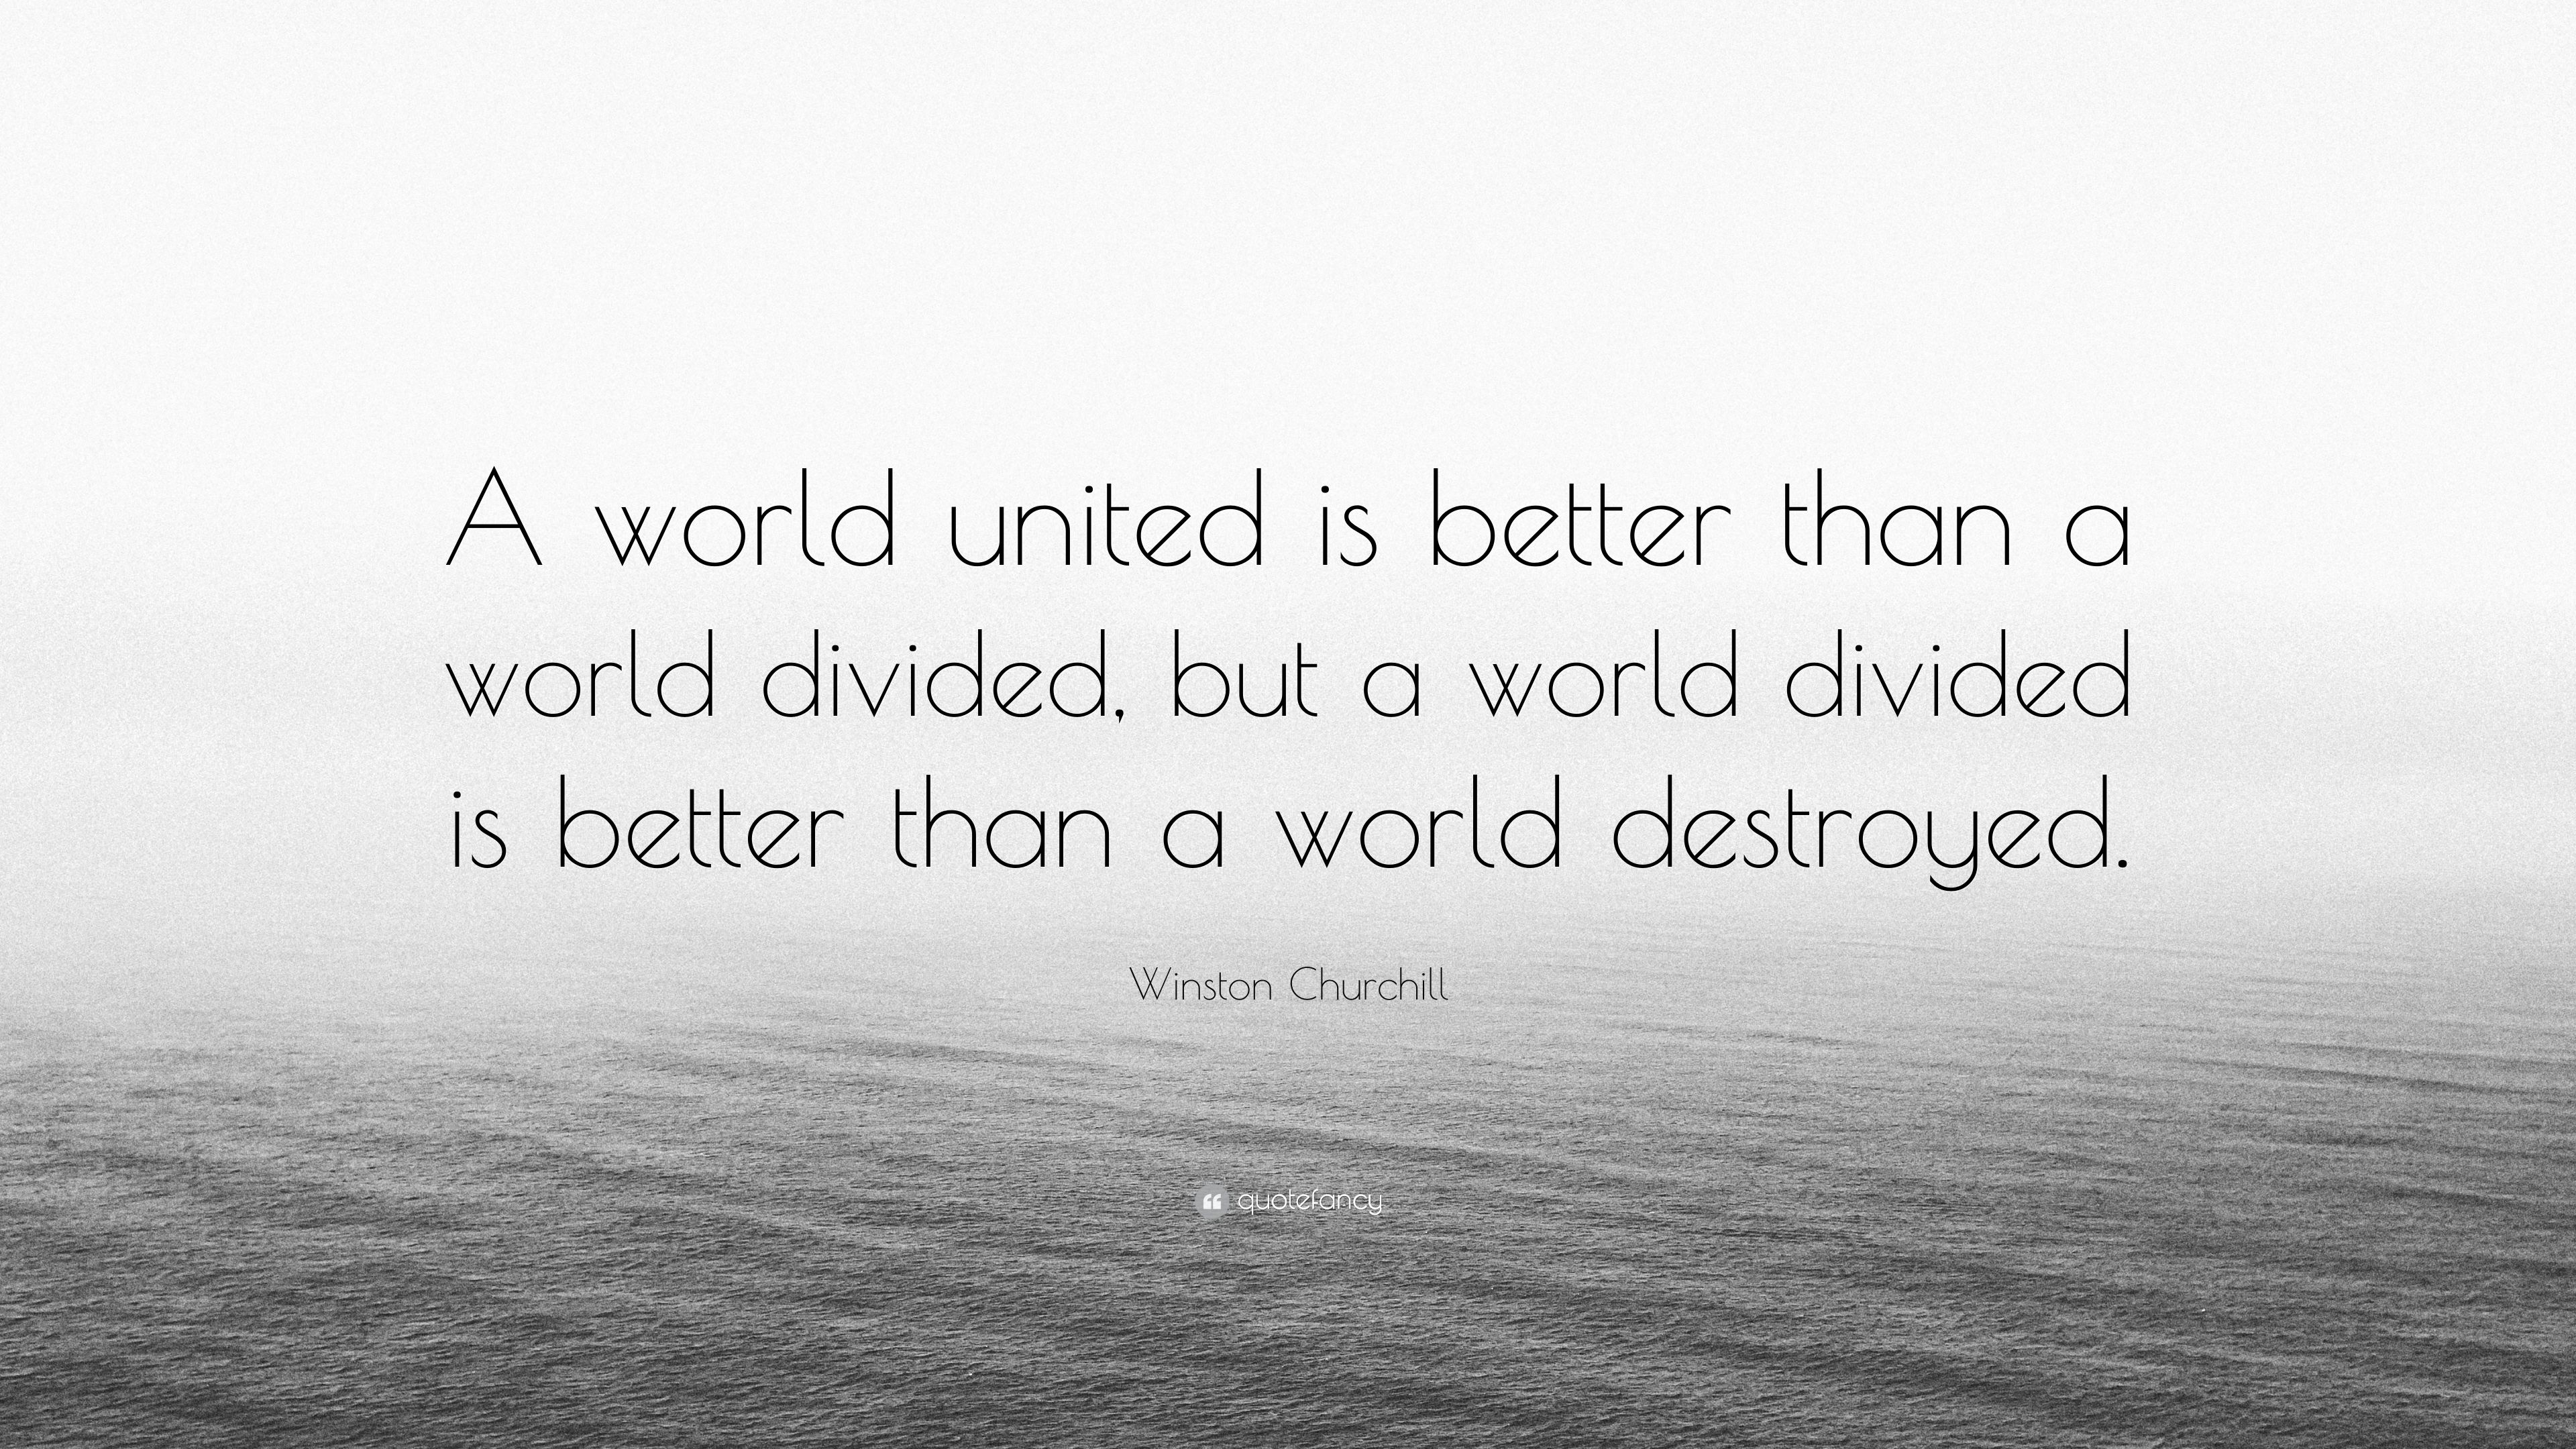 """Winston Churchill Quote: """"A world united is better than a world divided,  but a world divided is better than a world destroyed."""" (9 wallpapers) -  Quotefancy"""